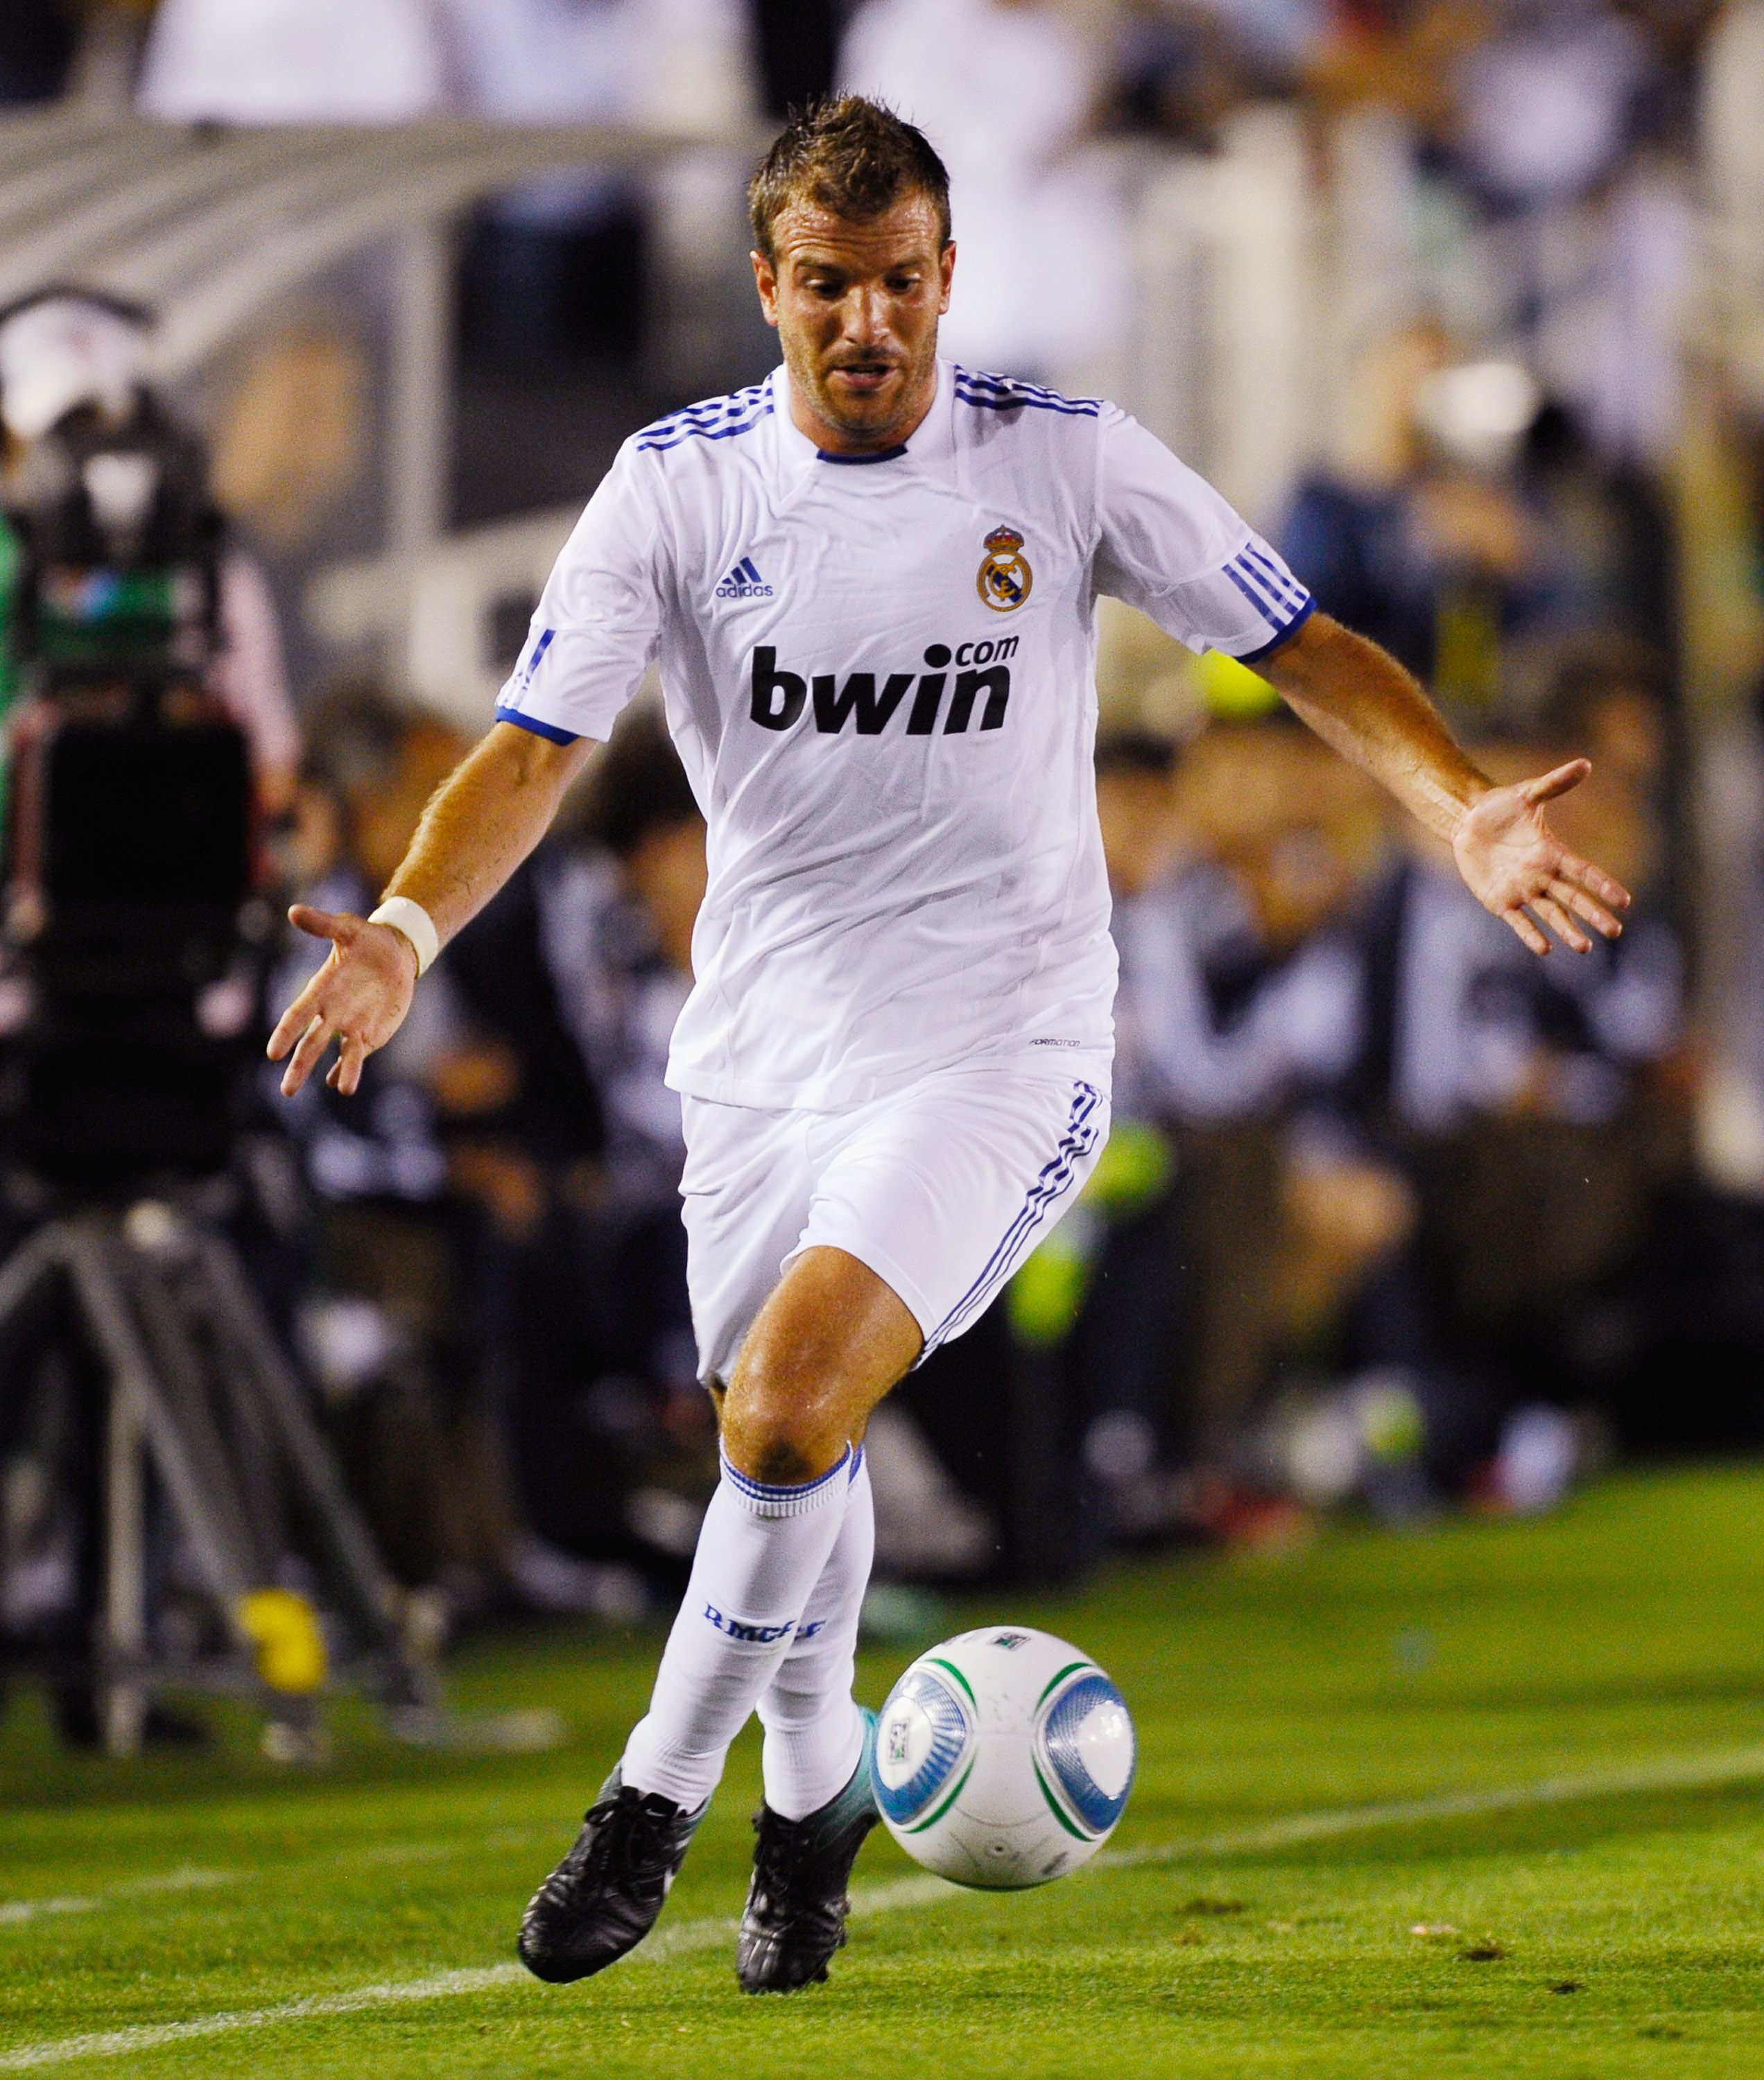 PASADENA, CA - AUGUST 07:  Rafael van der Vaart #23 of Real Madrid during the pre-season friendly soccer match against Los Angeles Galaxy on August 7, 2010 at the Rose Bowl in Pasadena, California. Real Madrid will travel back to Spain after the soccer ma